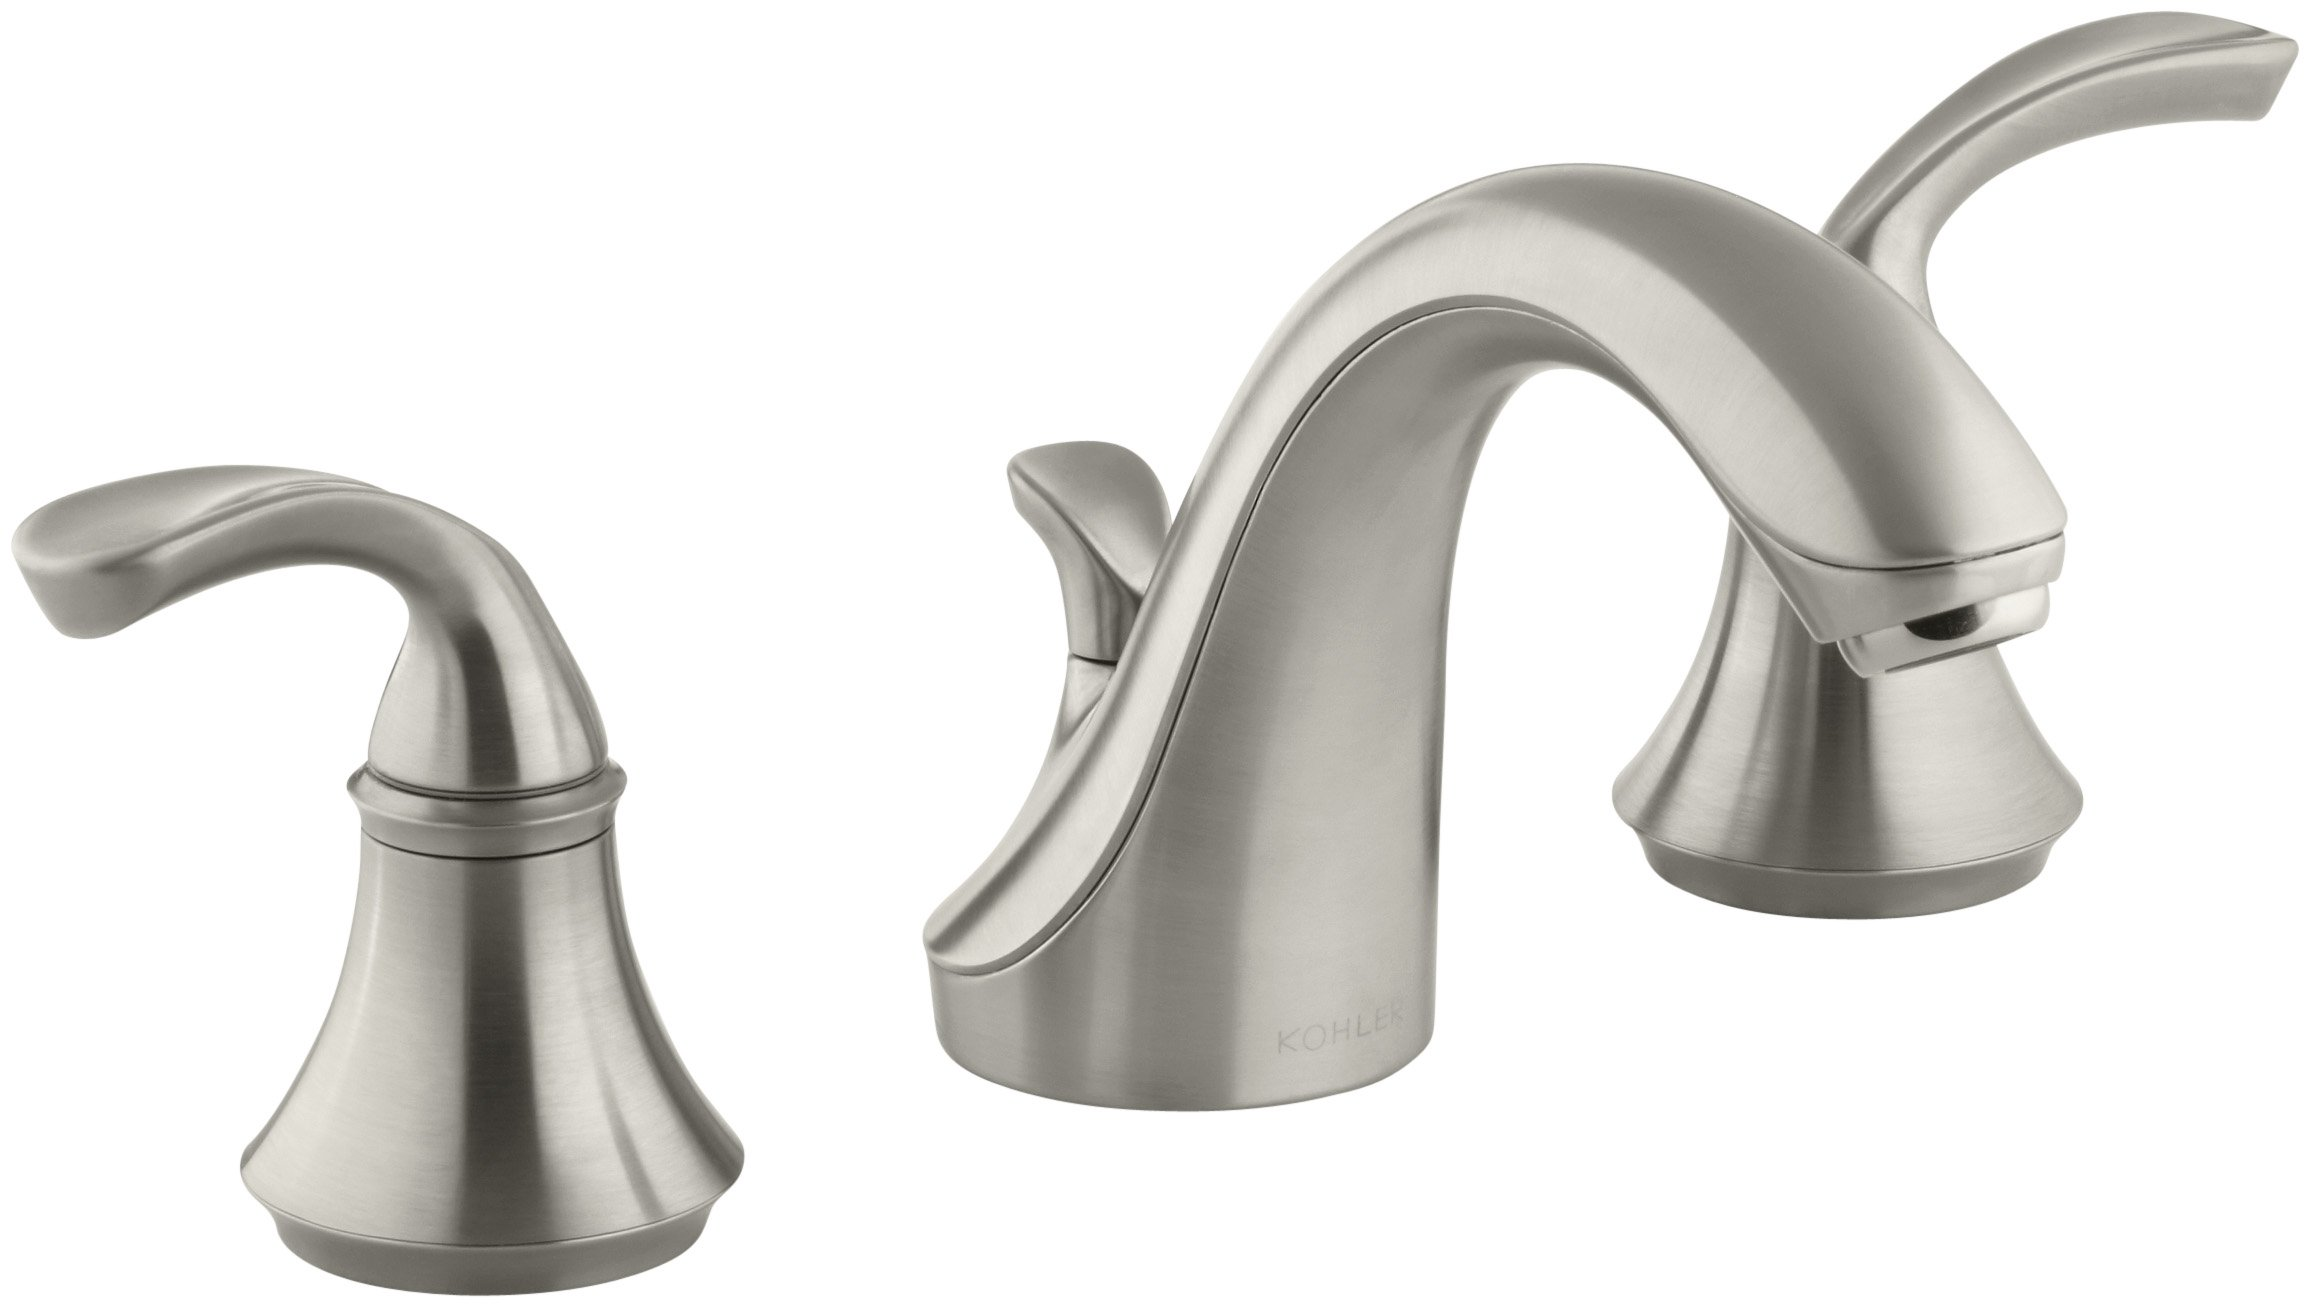 Bathroom Faucet by KOHLER, Bathroom Sink Faucet, Forte Sculpted Collection, 2-Handle Widespread Faucet with Metal Drain, Vibrant Brushed Nickel, K-10272-4-BN